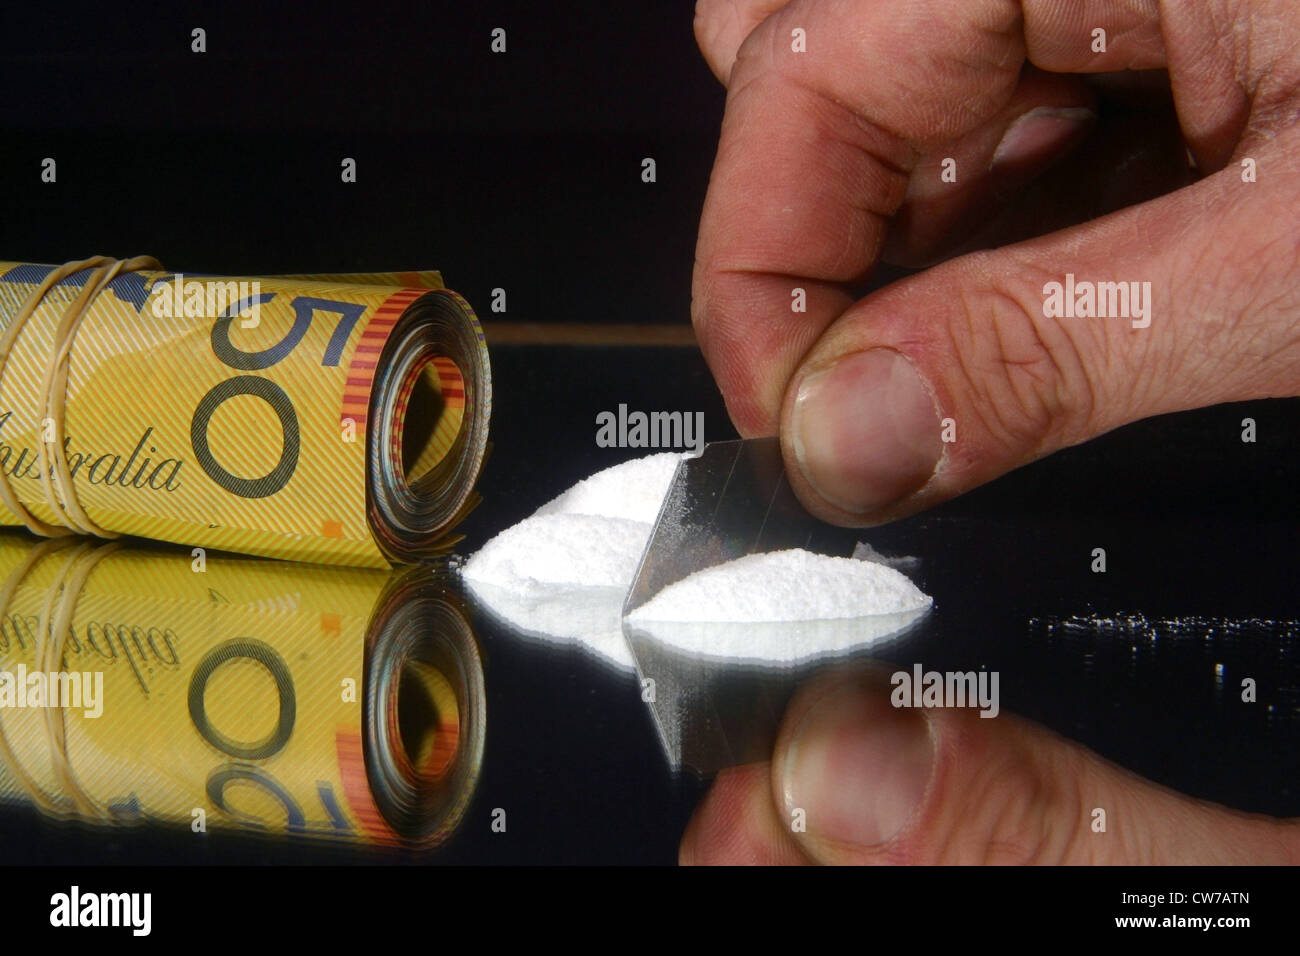 packet of banknotes and cocaine - Stock Image